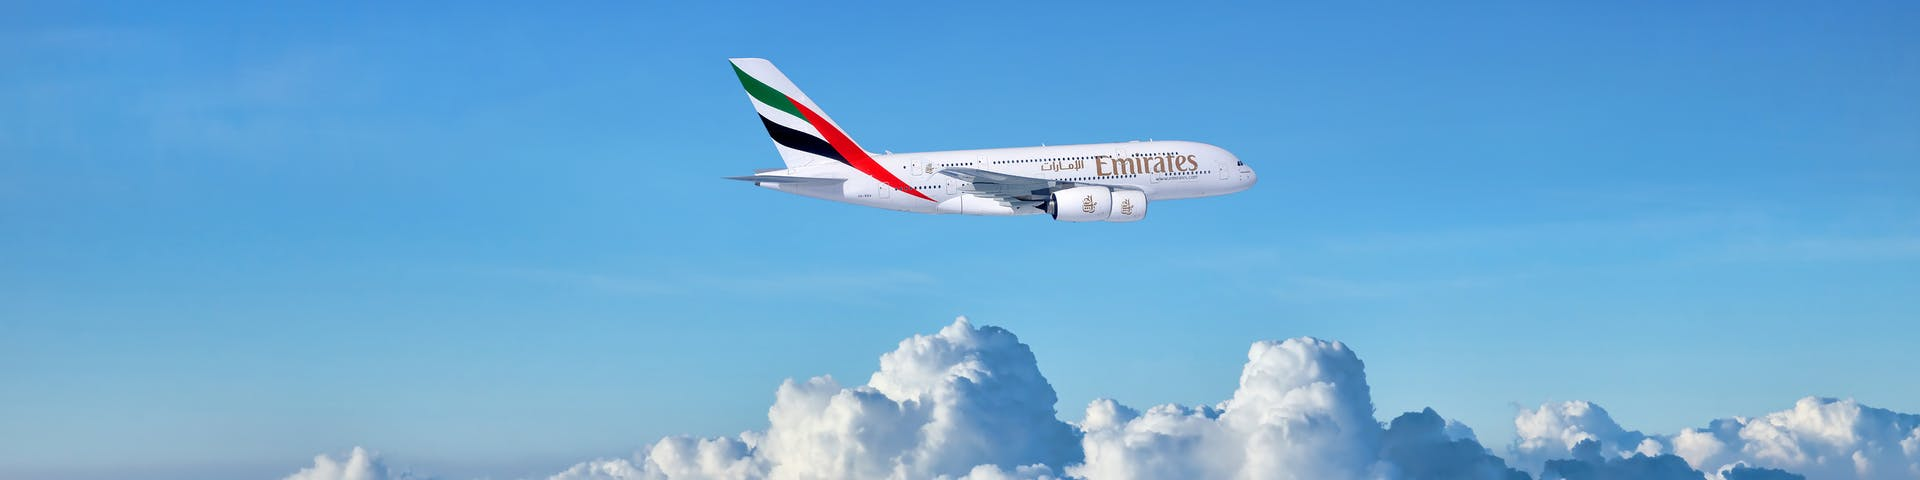 Whats Hurry About Flying South When >> Emirates Flights Book A Flight Browse Our Flight Offers And